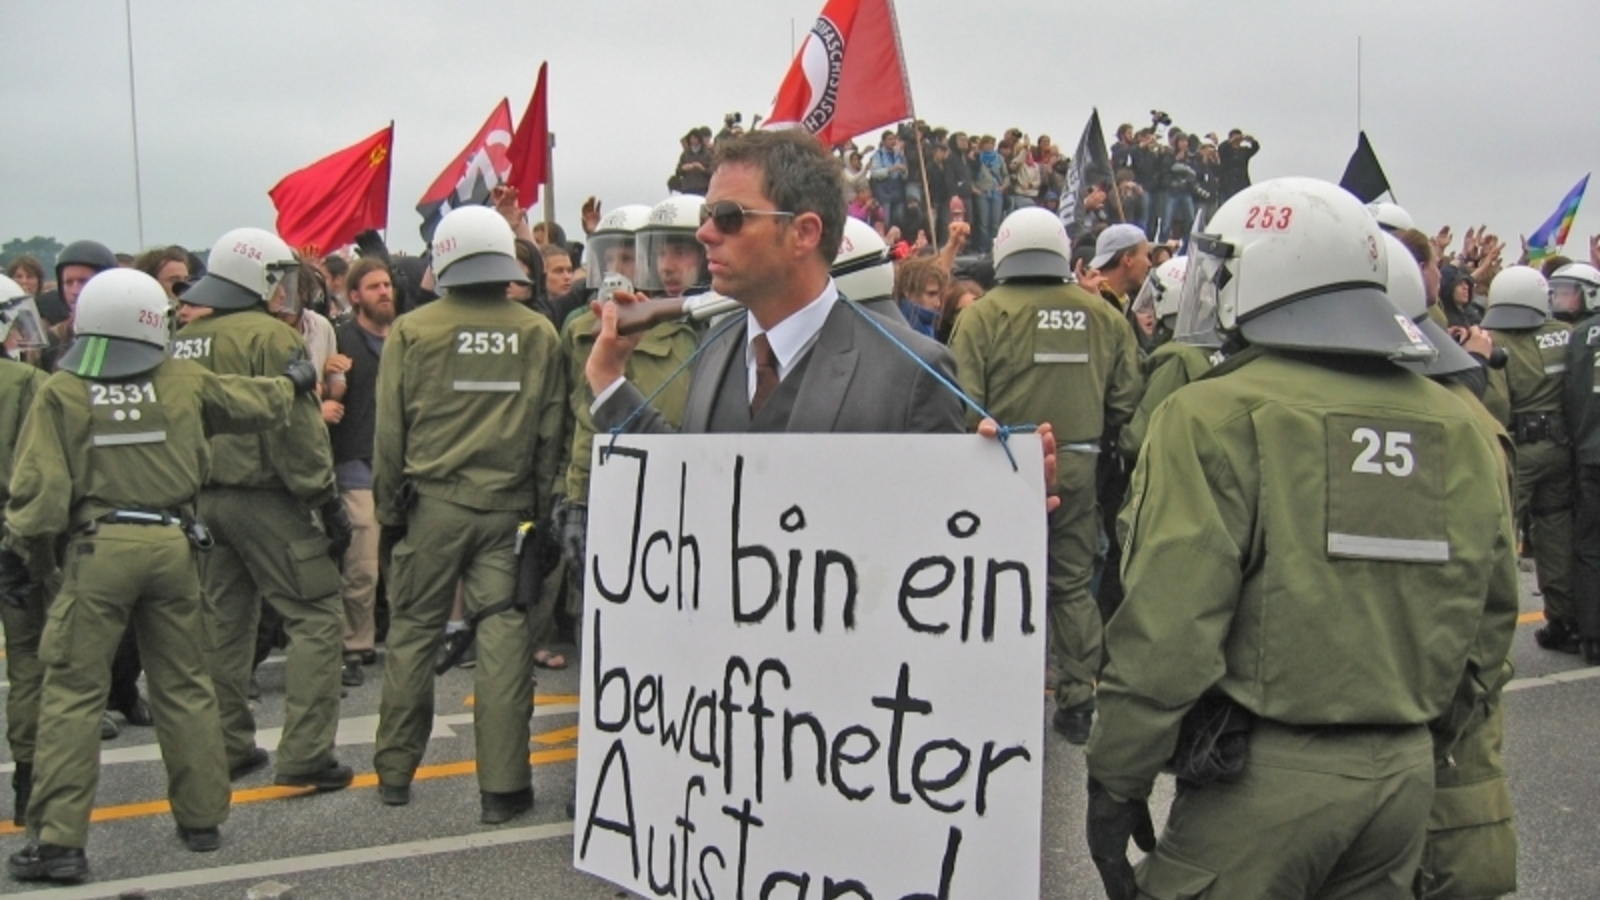 Demonstrationszug zerschlagen – welcome to Germany!